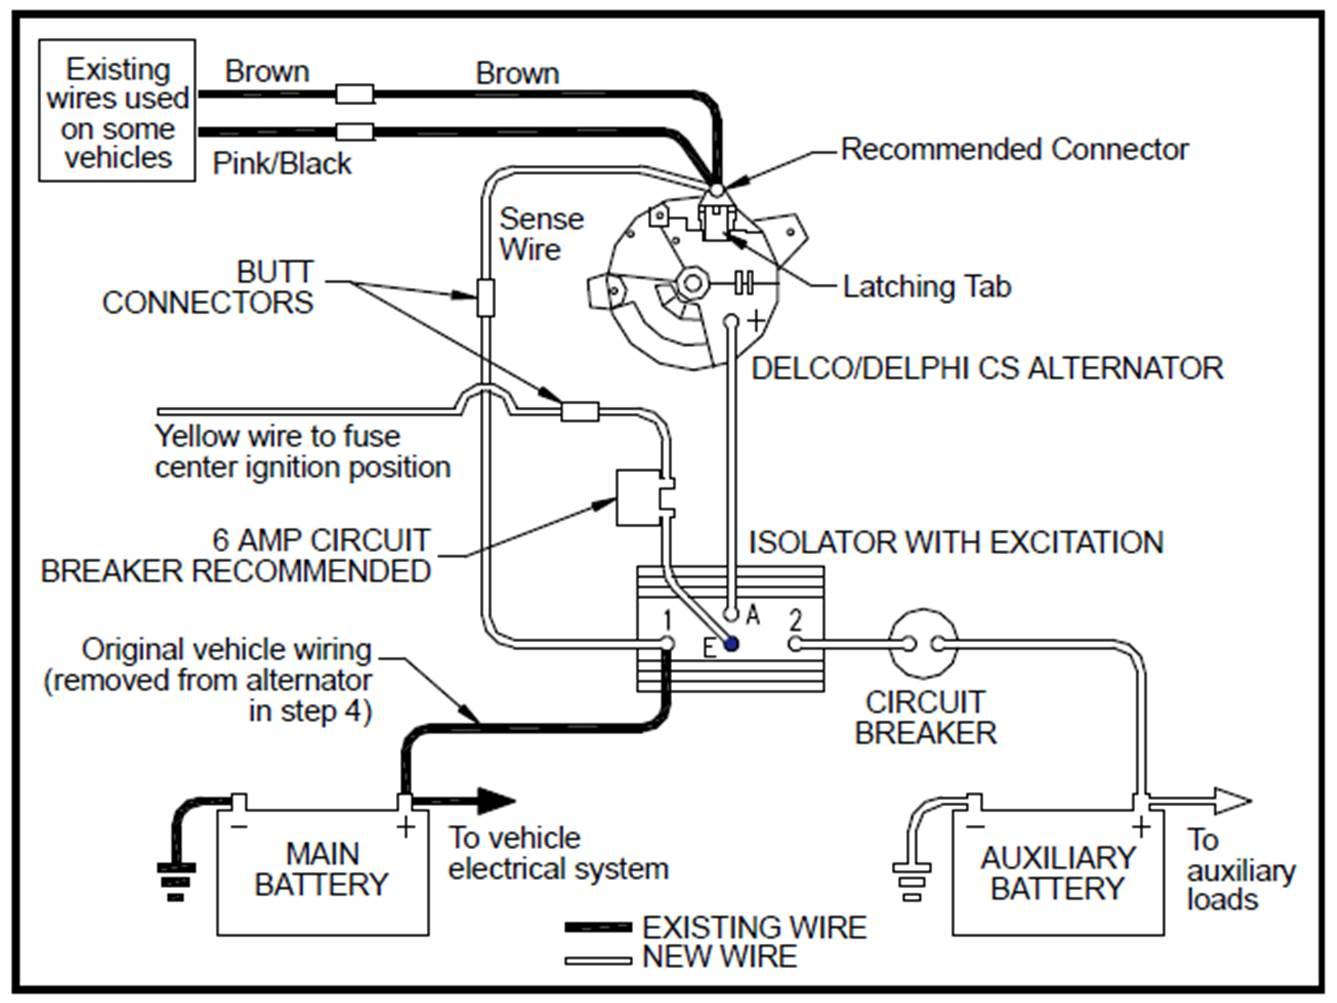 1381154 thesamba com vanagon view topic simplest auxiliary battery vanagon auxiliary battery wiring diagram at crackthecode.co